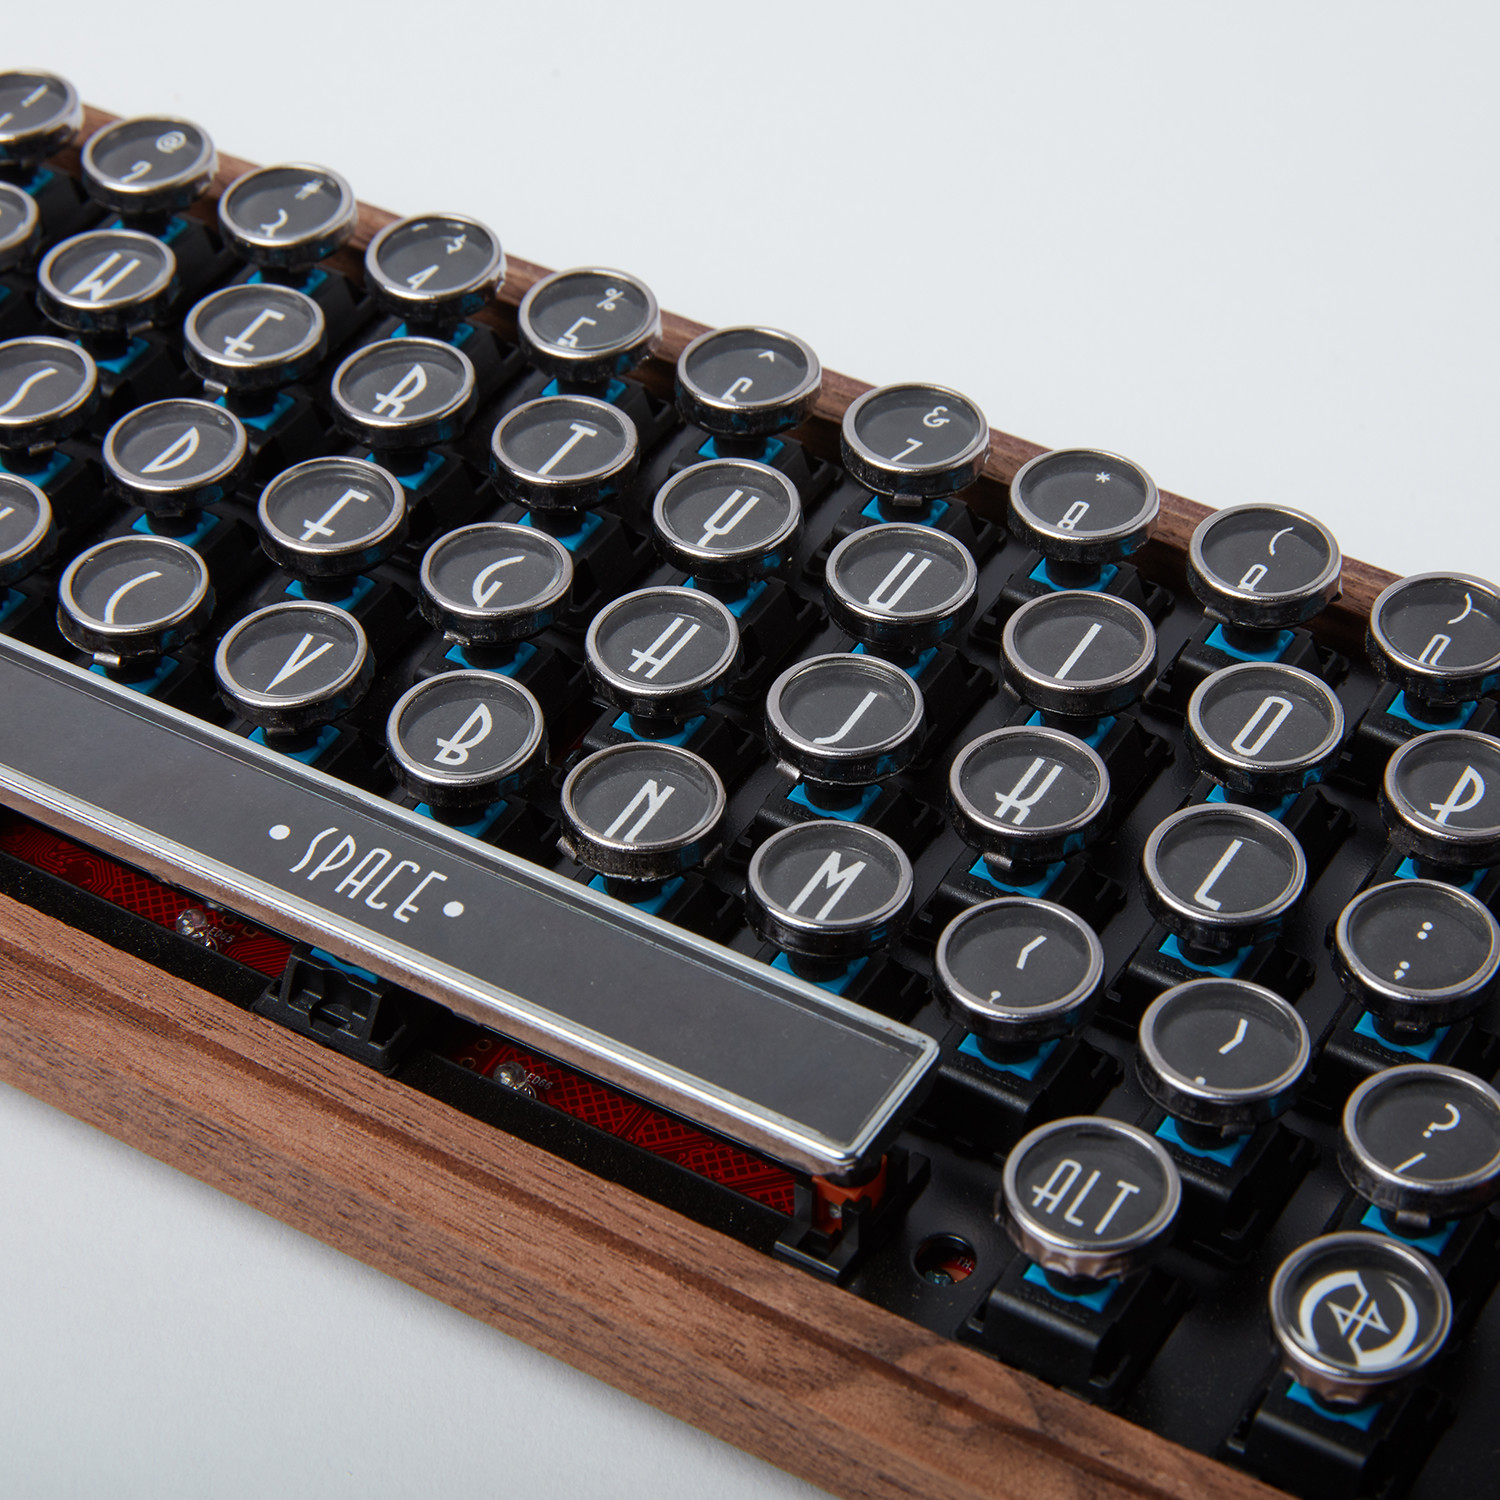 Typewriter keyboard clicky key style datamancer for What is touchofmodern